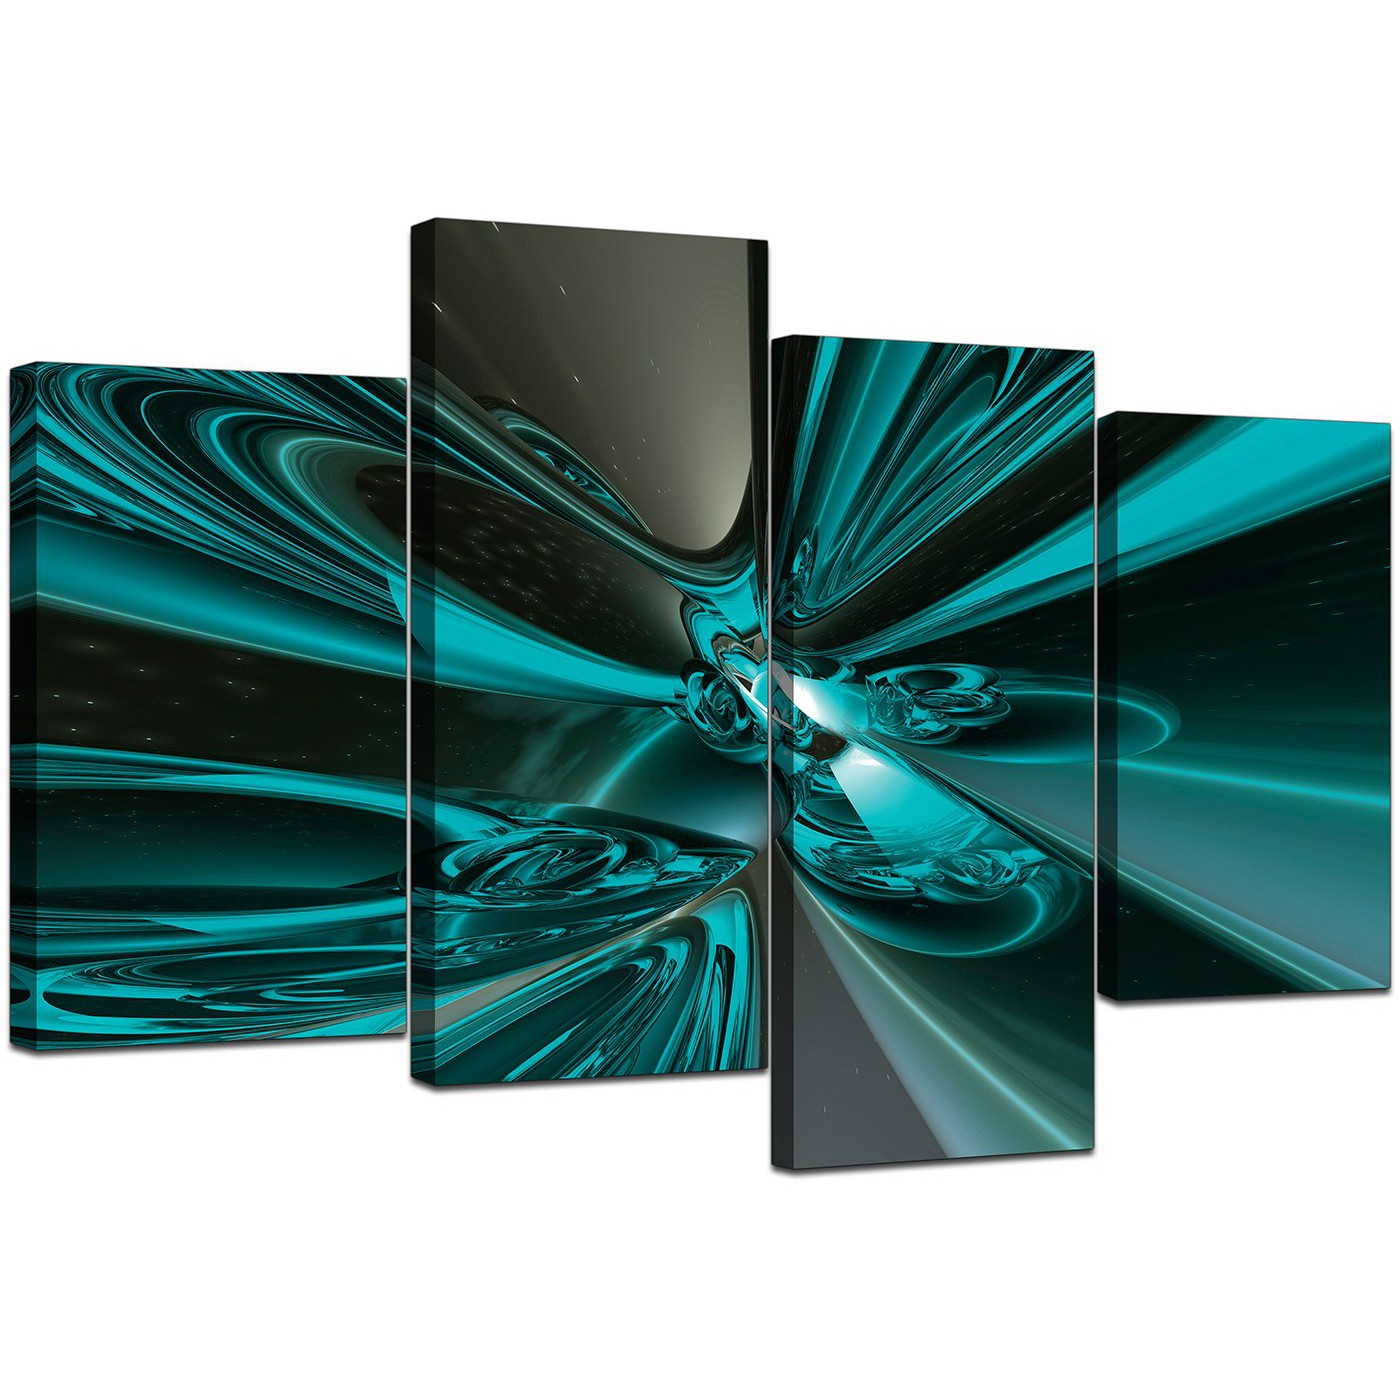 Large Abstract Canvas Art In Teal For Living Room